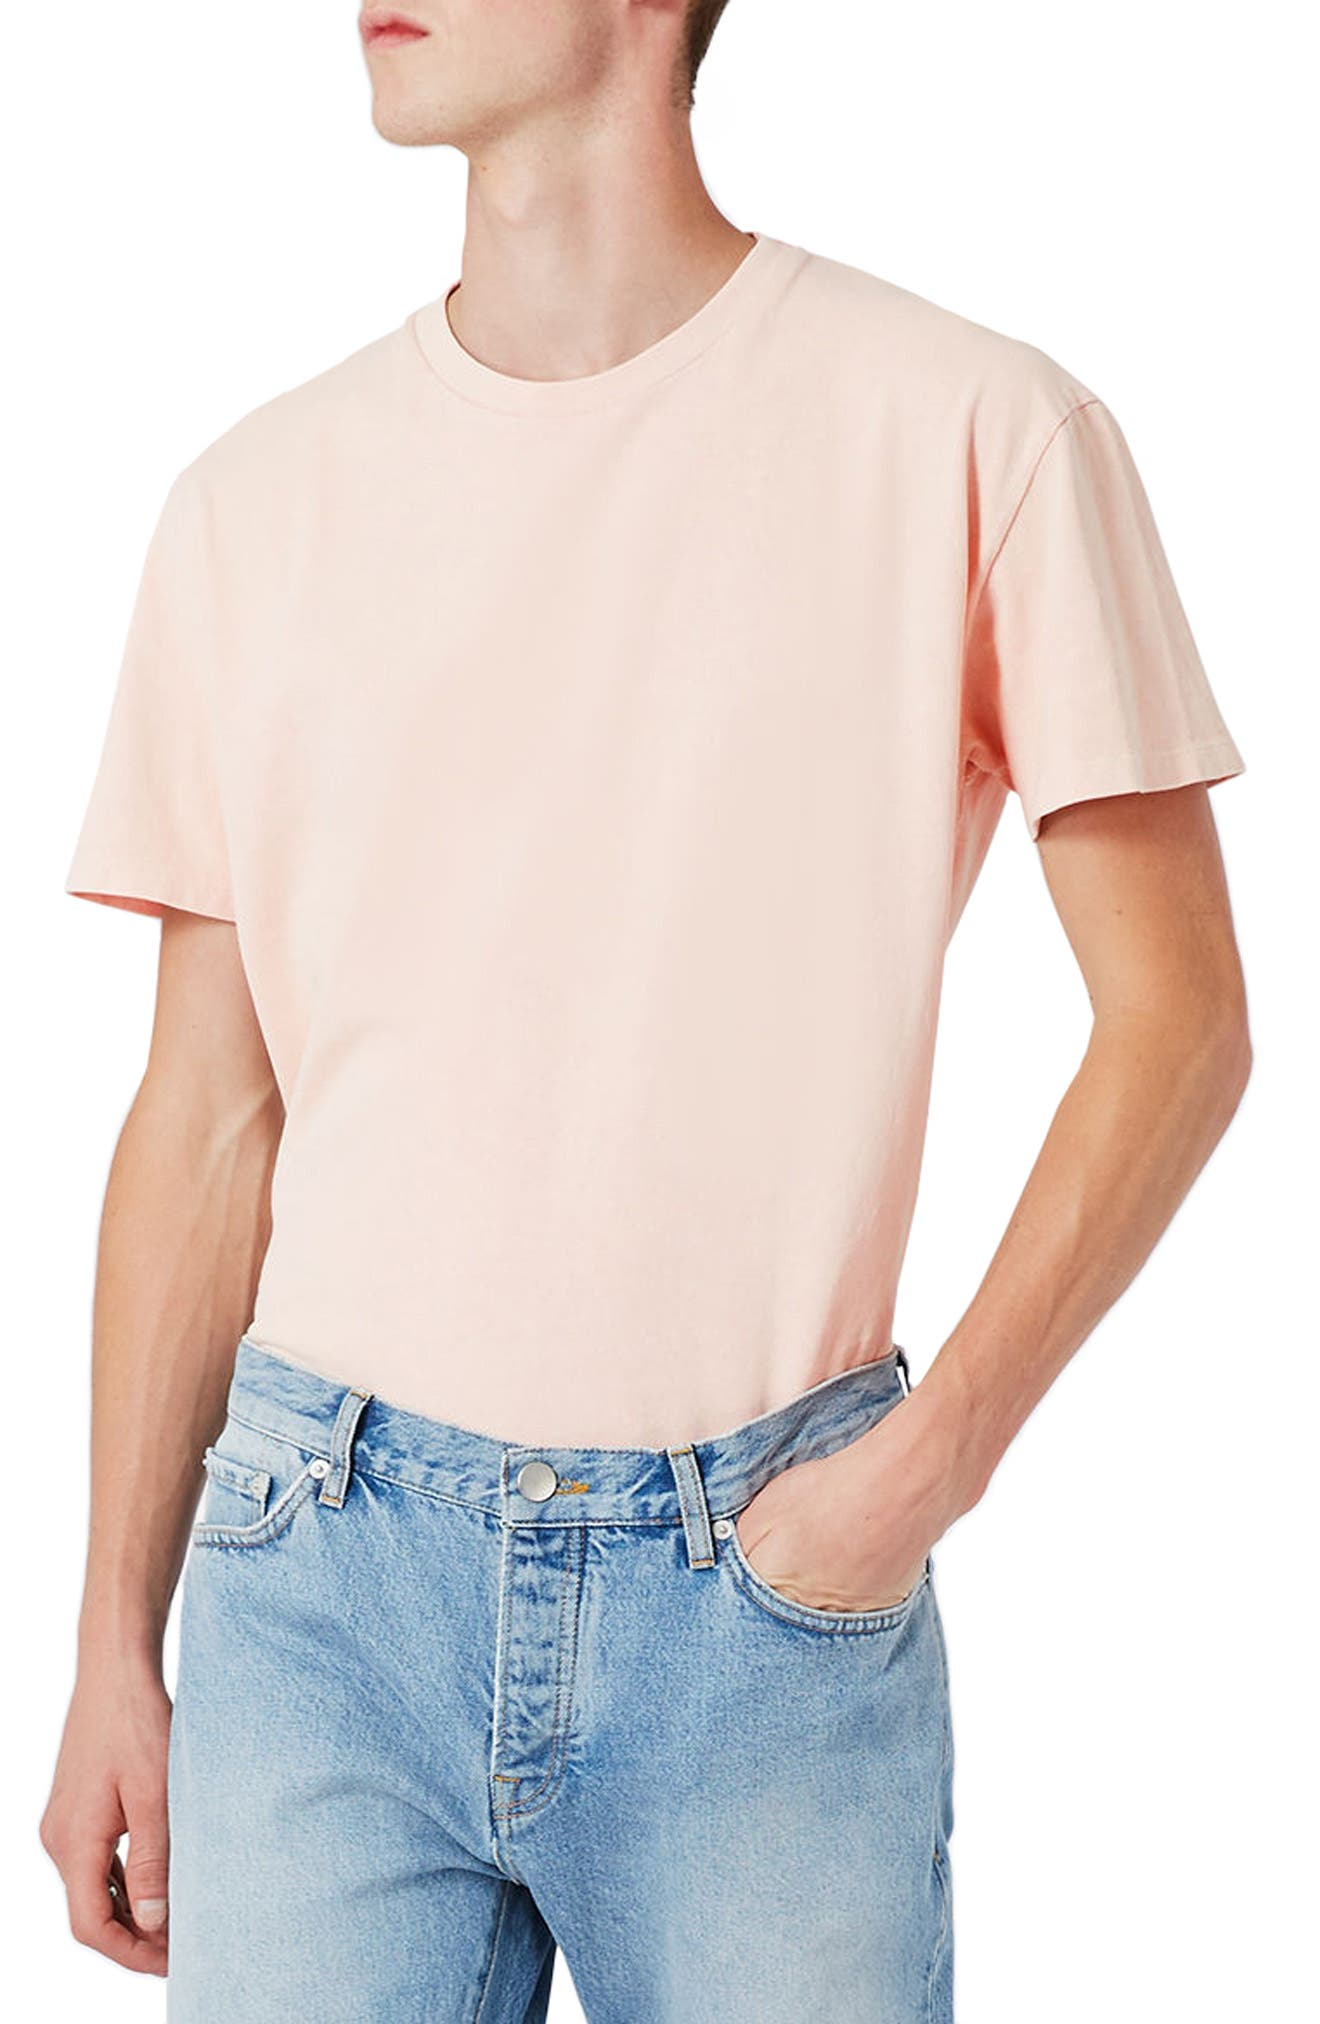 Alternate Image 1 Selected - Topman LTD Collection Washed T-Shirt